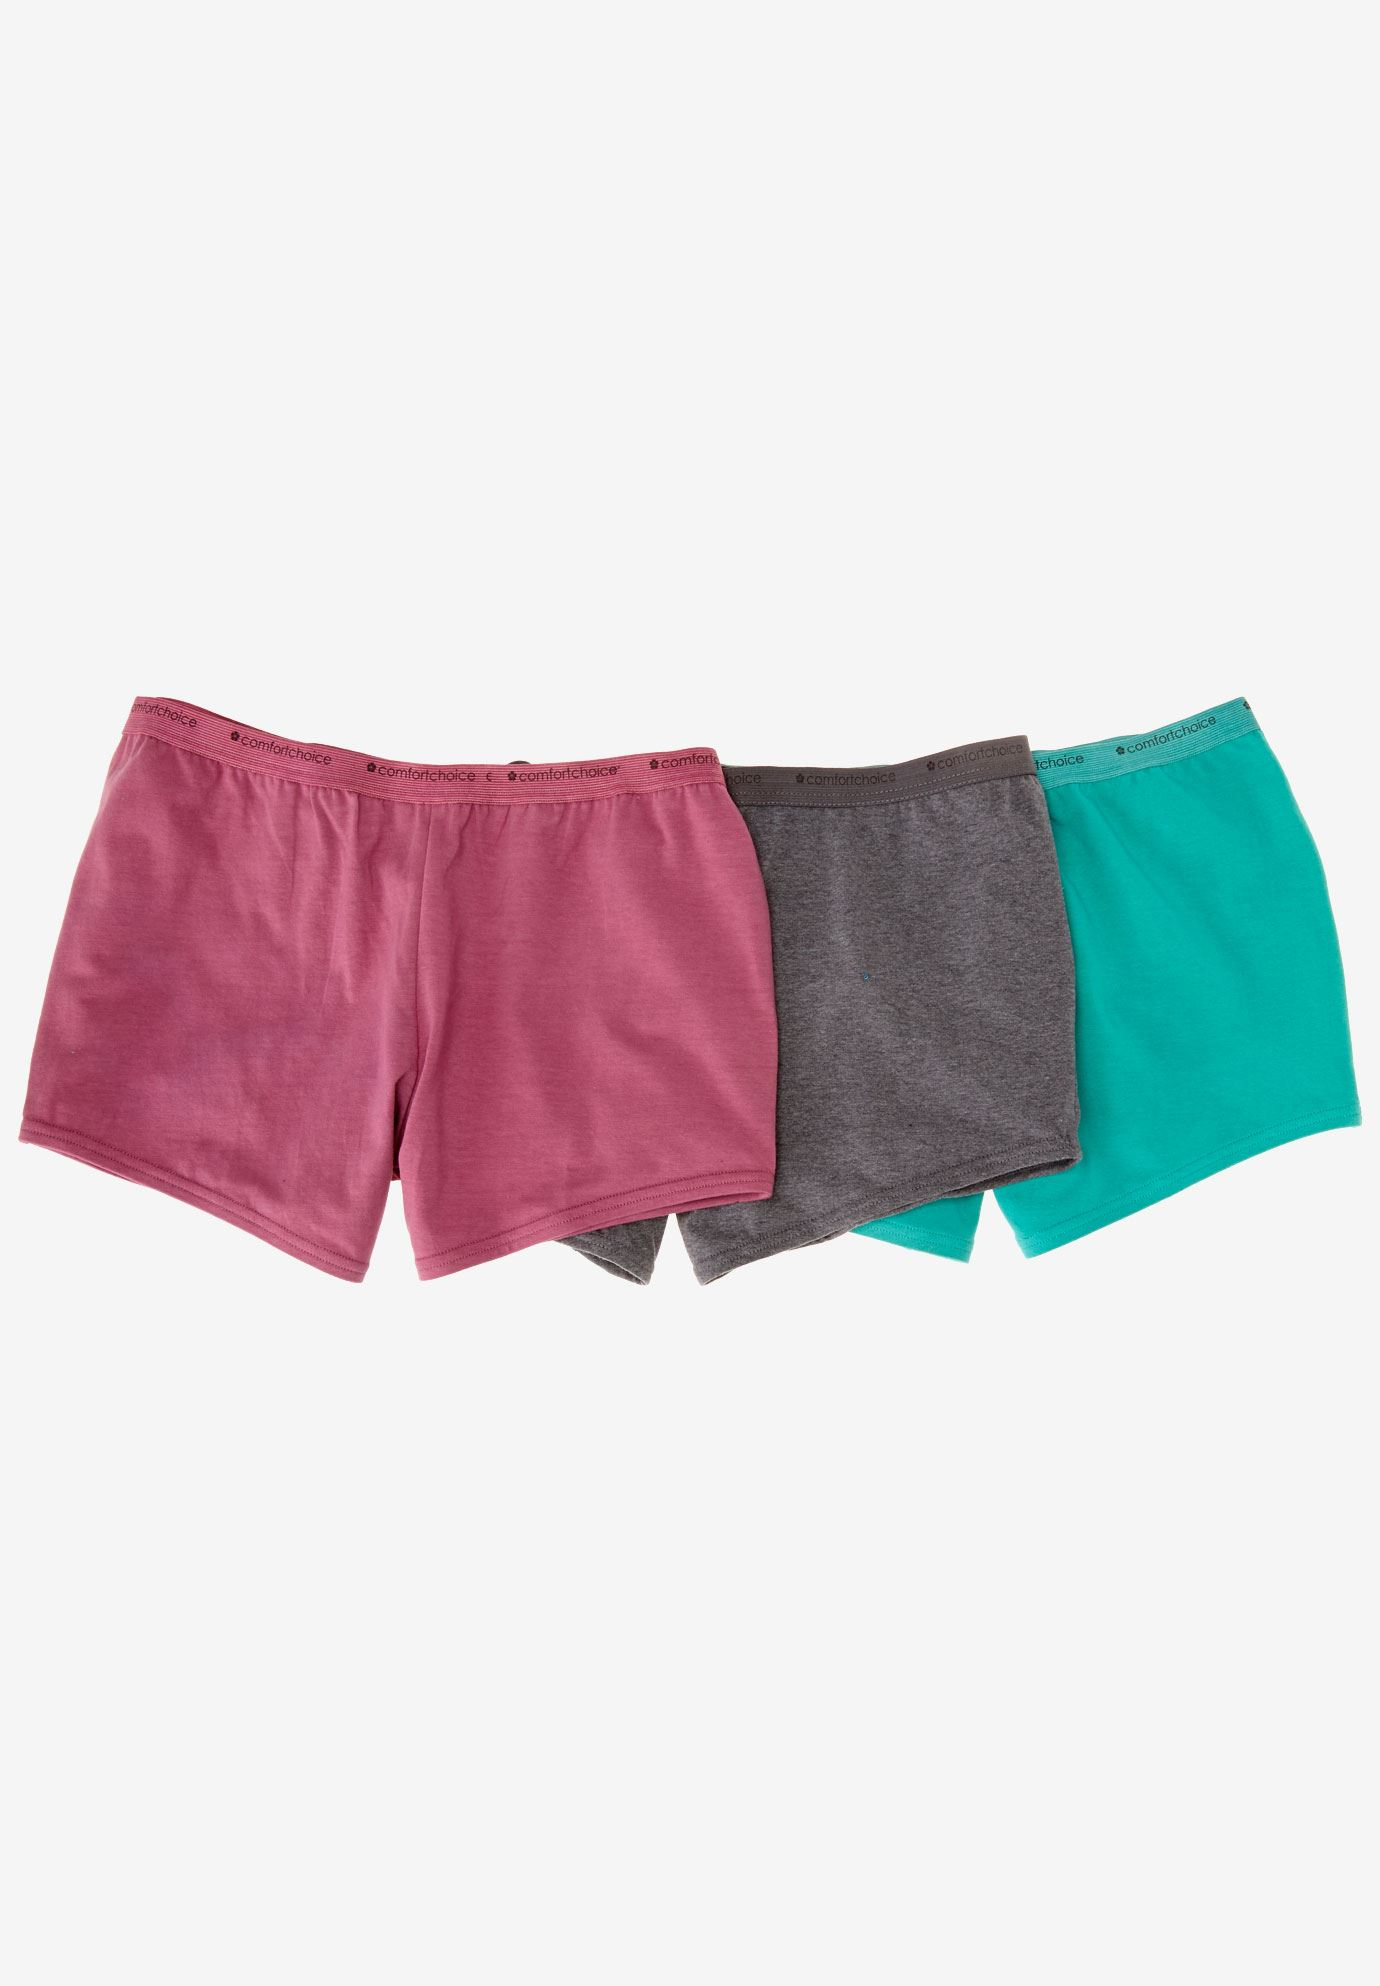 3-Pack Boyshort by Comfort Choice®, BRIGHT PACK, hi-res